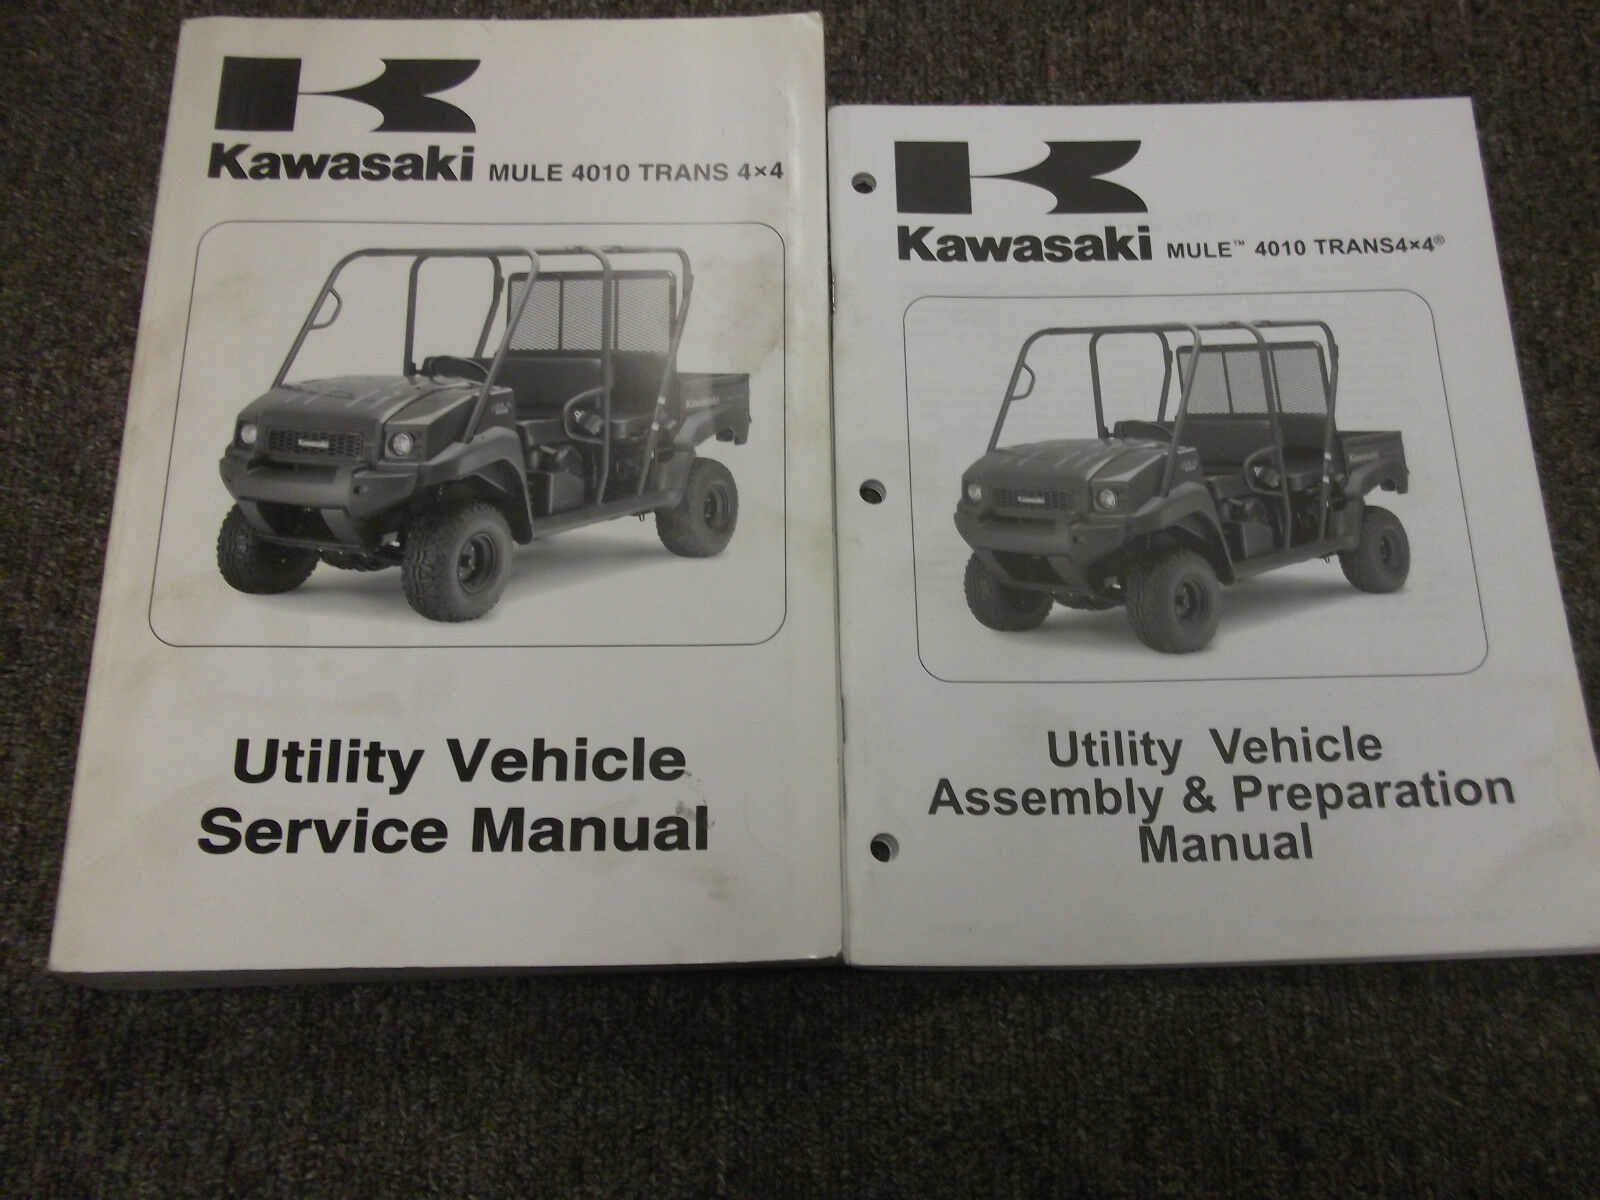 2009 Kawasaki Mule 4010 Trans 4x4 Diesel Utility Service Repair Shop 3010 Snow Plow Wiring Diagram Manual Set 1 Of 9only Available